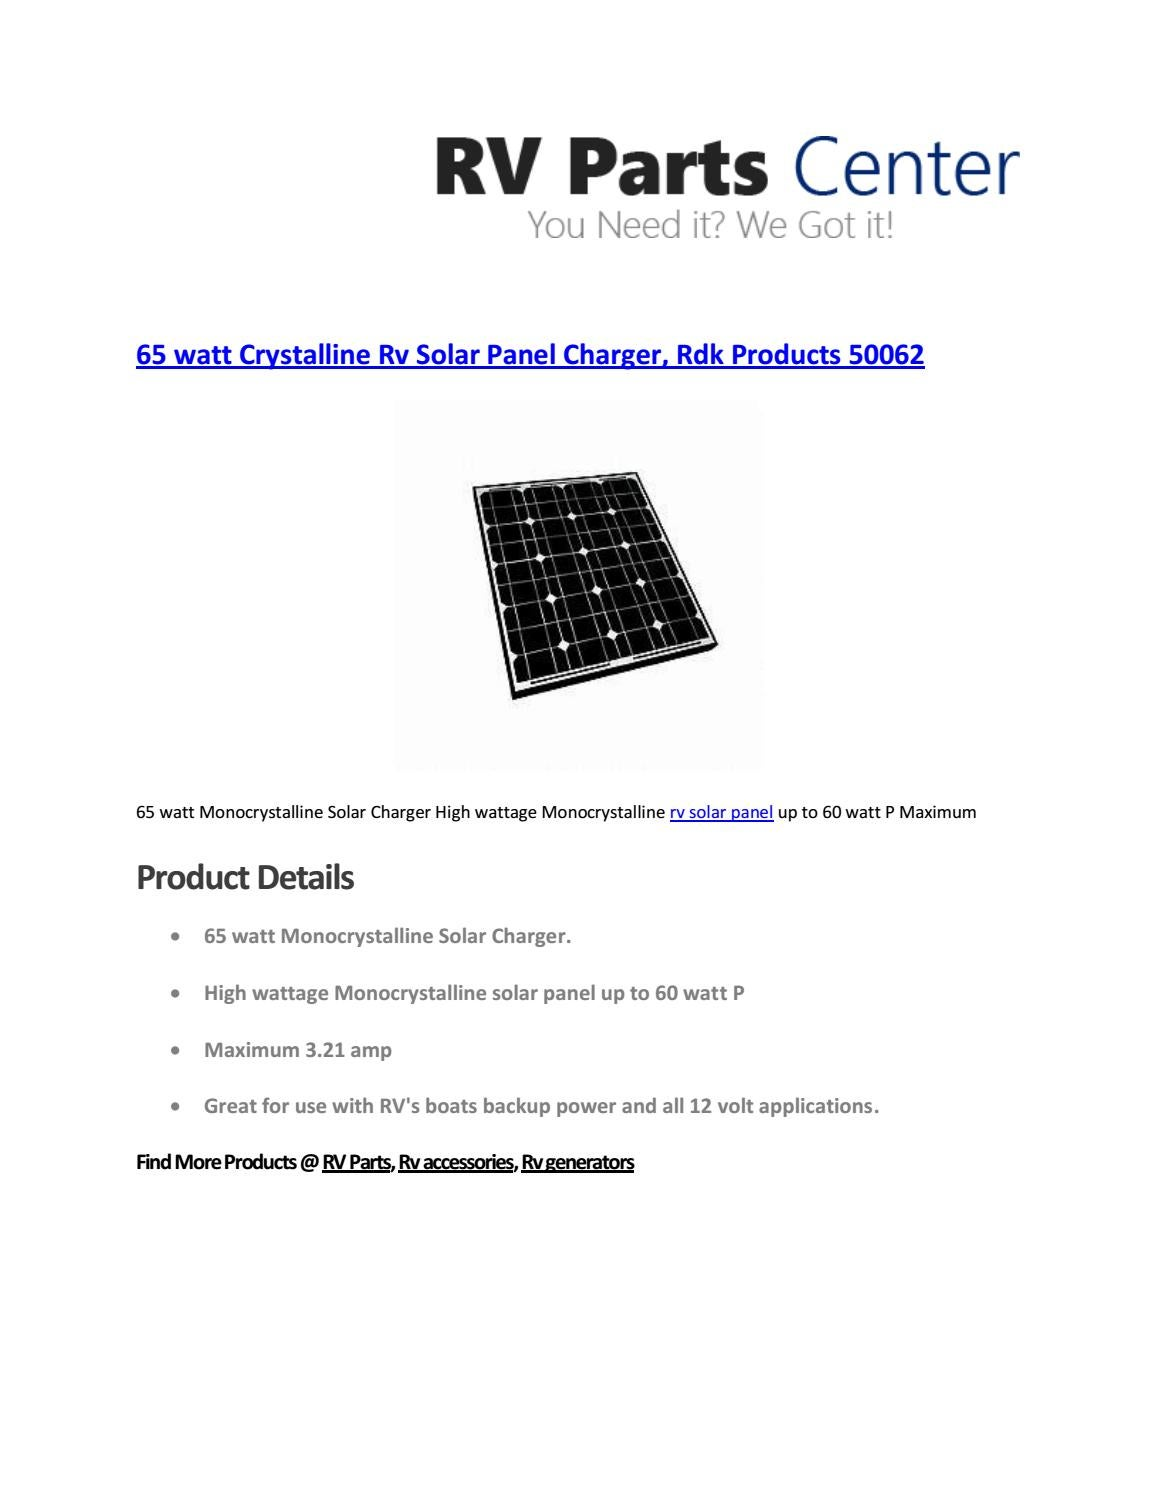 65 watt Crystalline RV Solar Panel Charger, rdk products